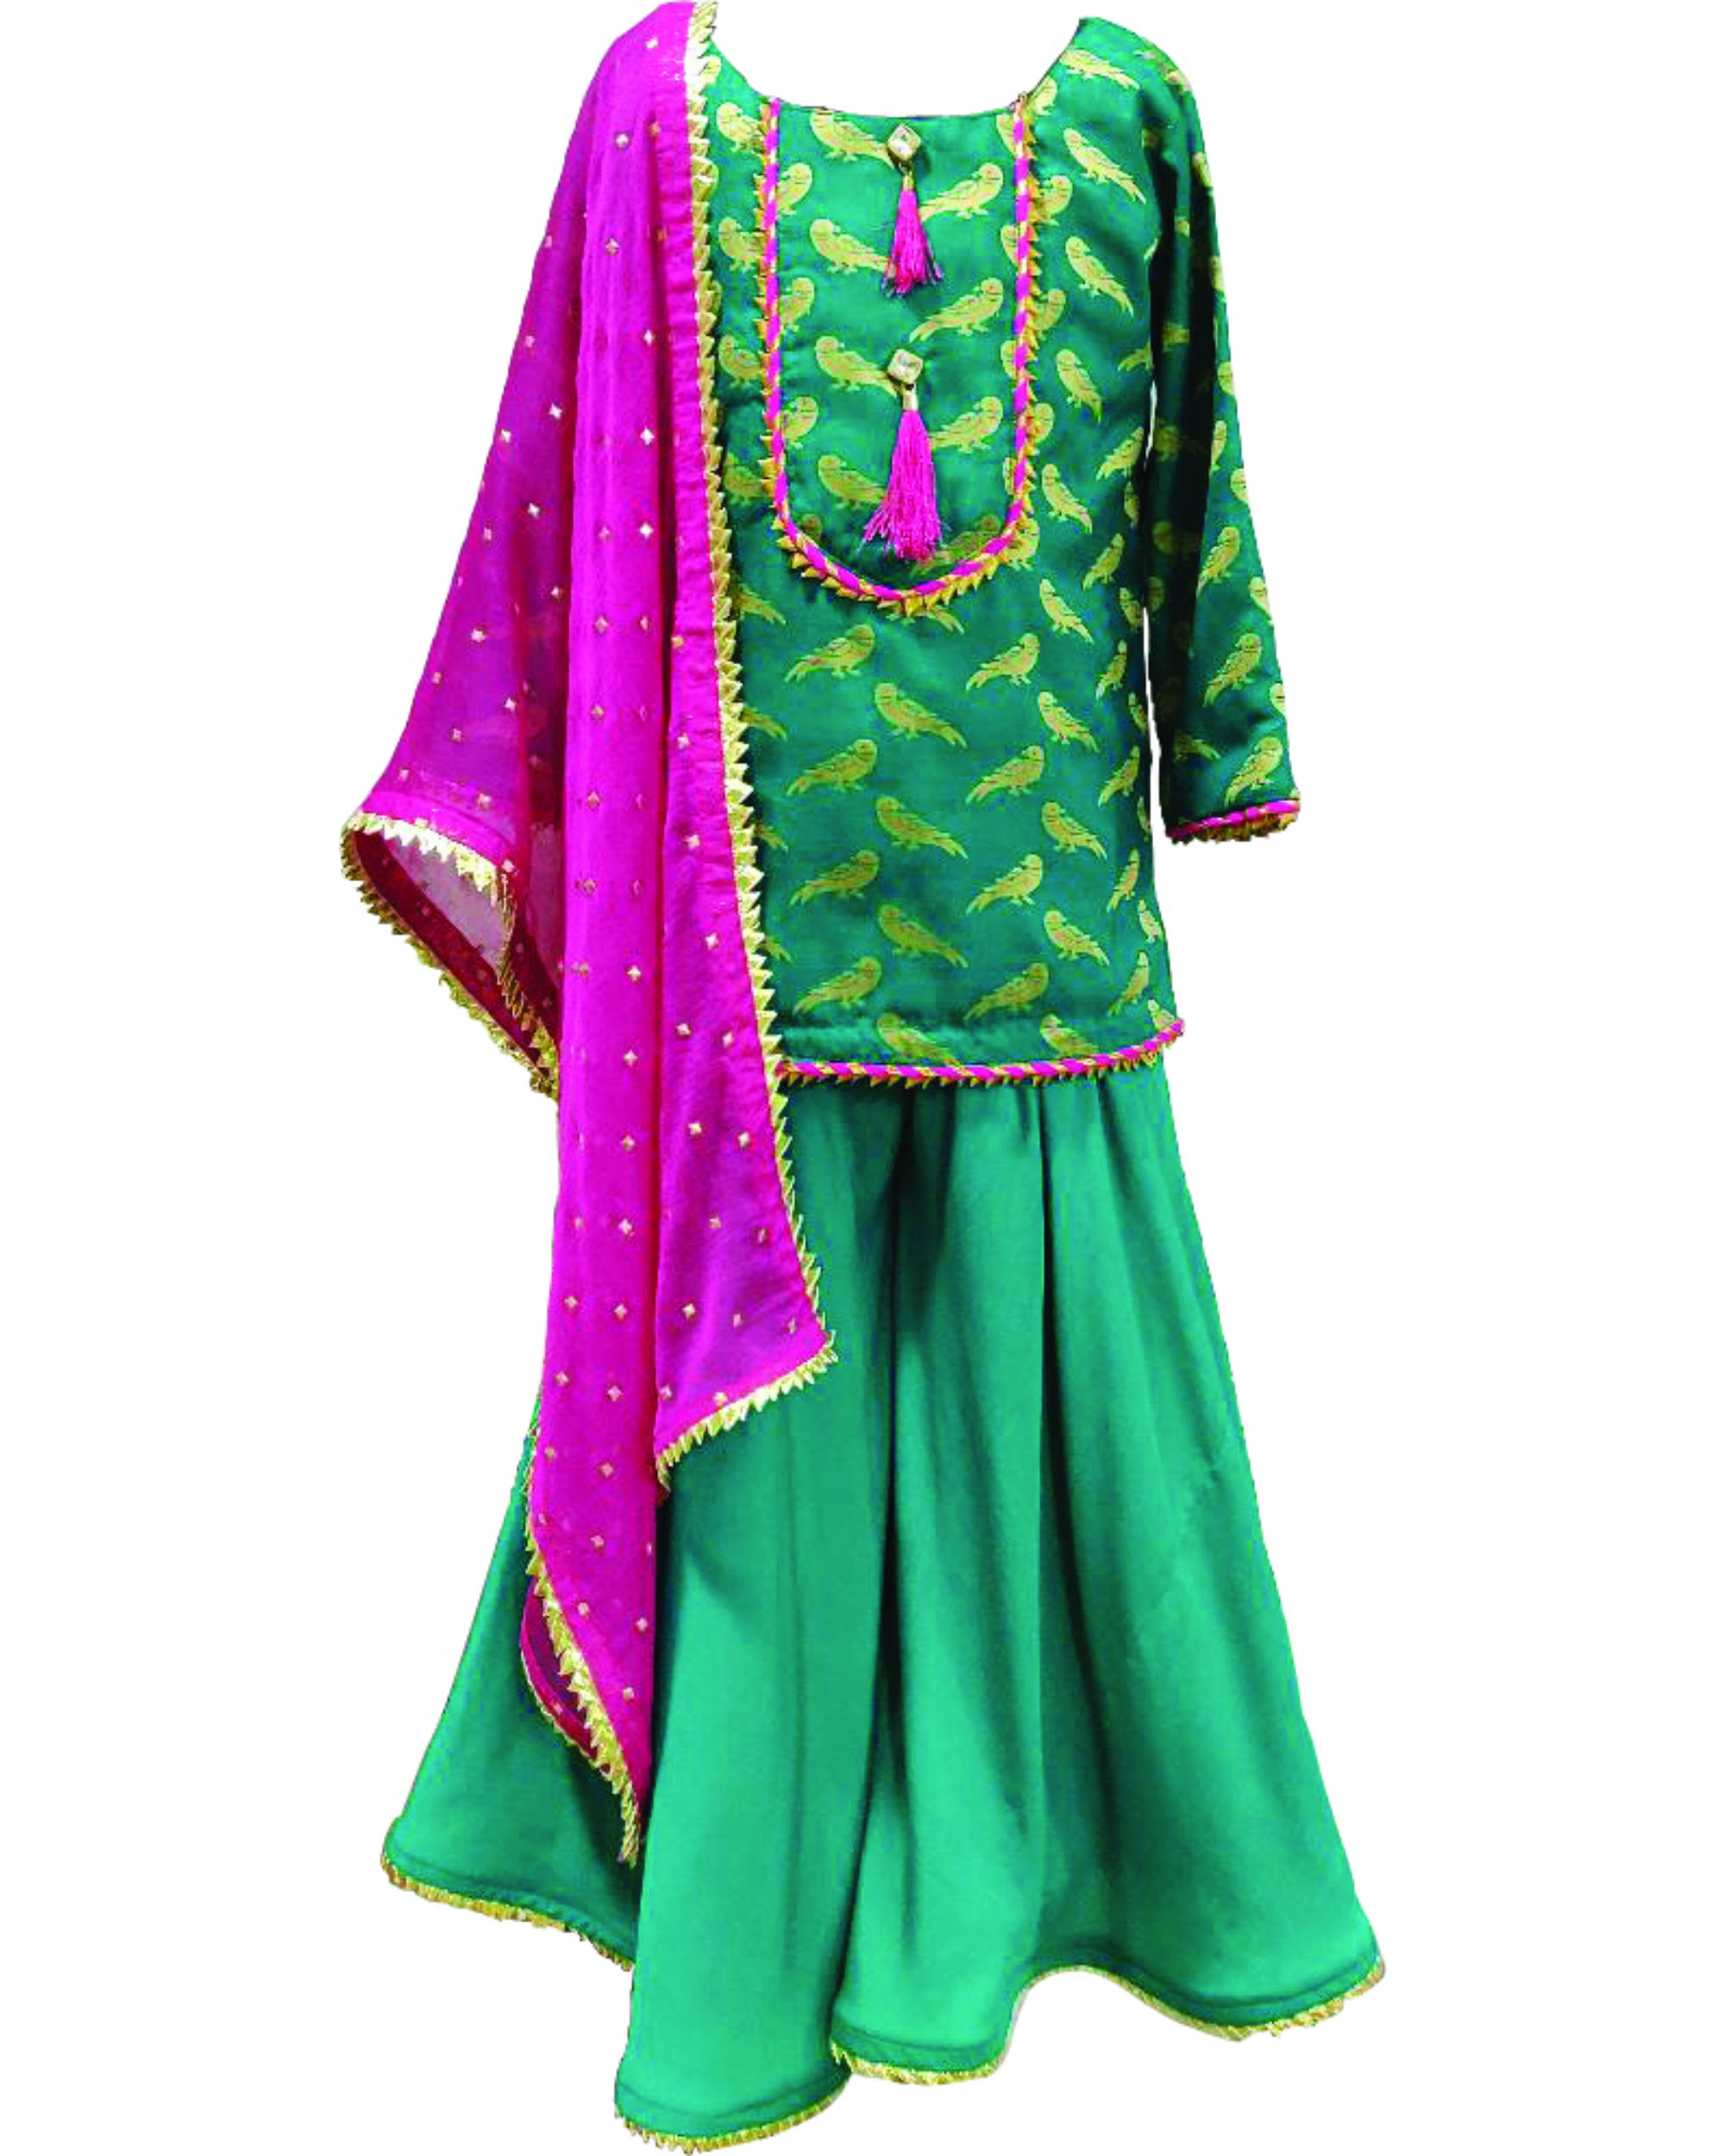 Sea green ghagara set